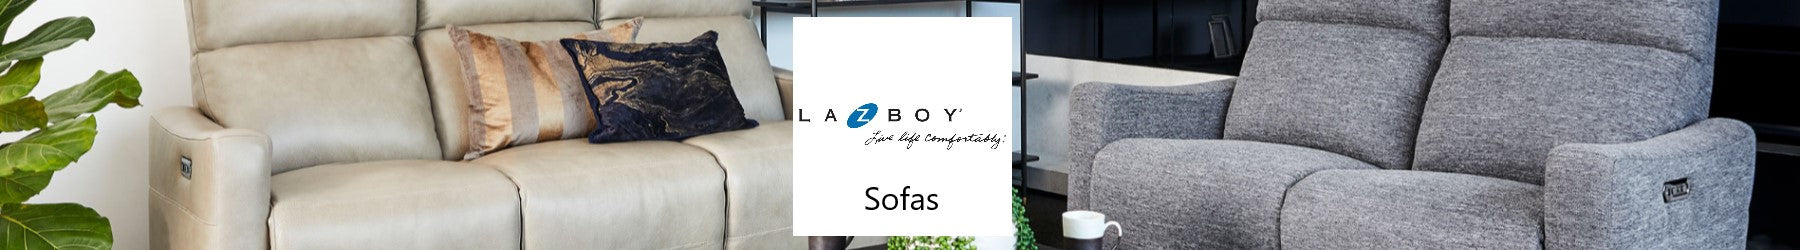 Lazy Boy Sofas and Lounges